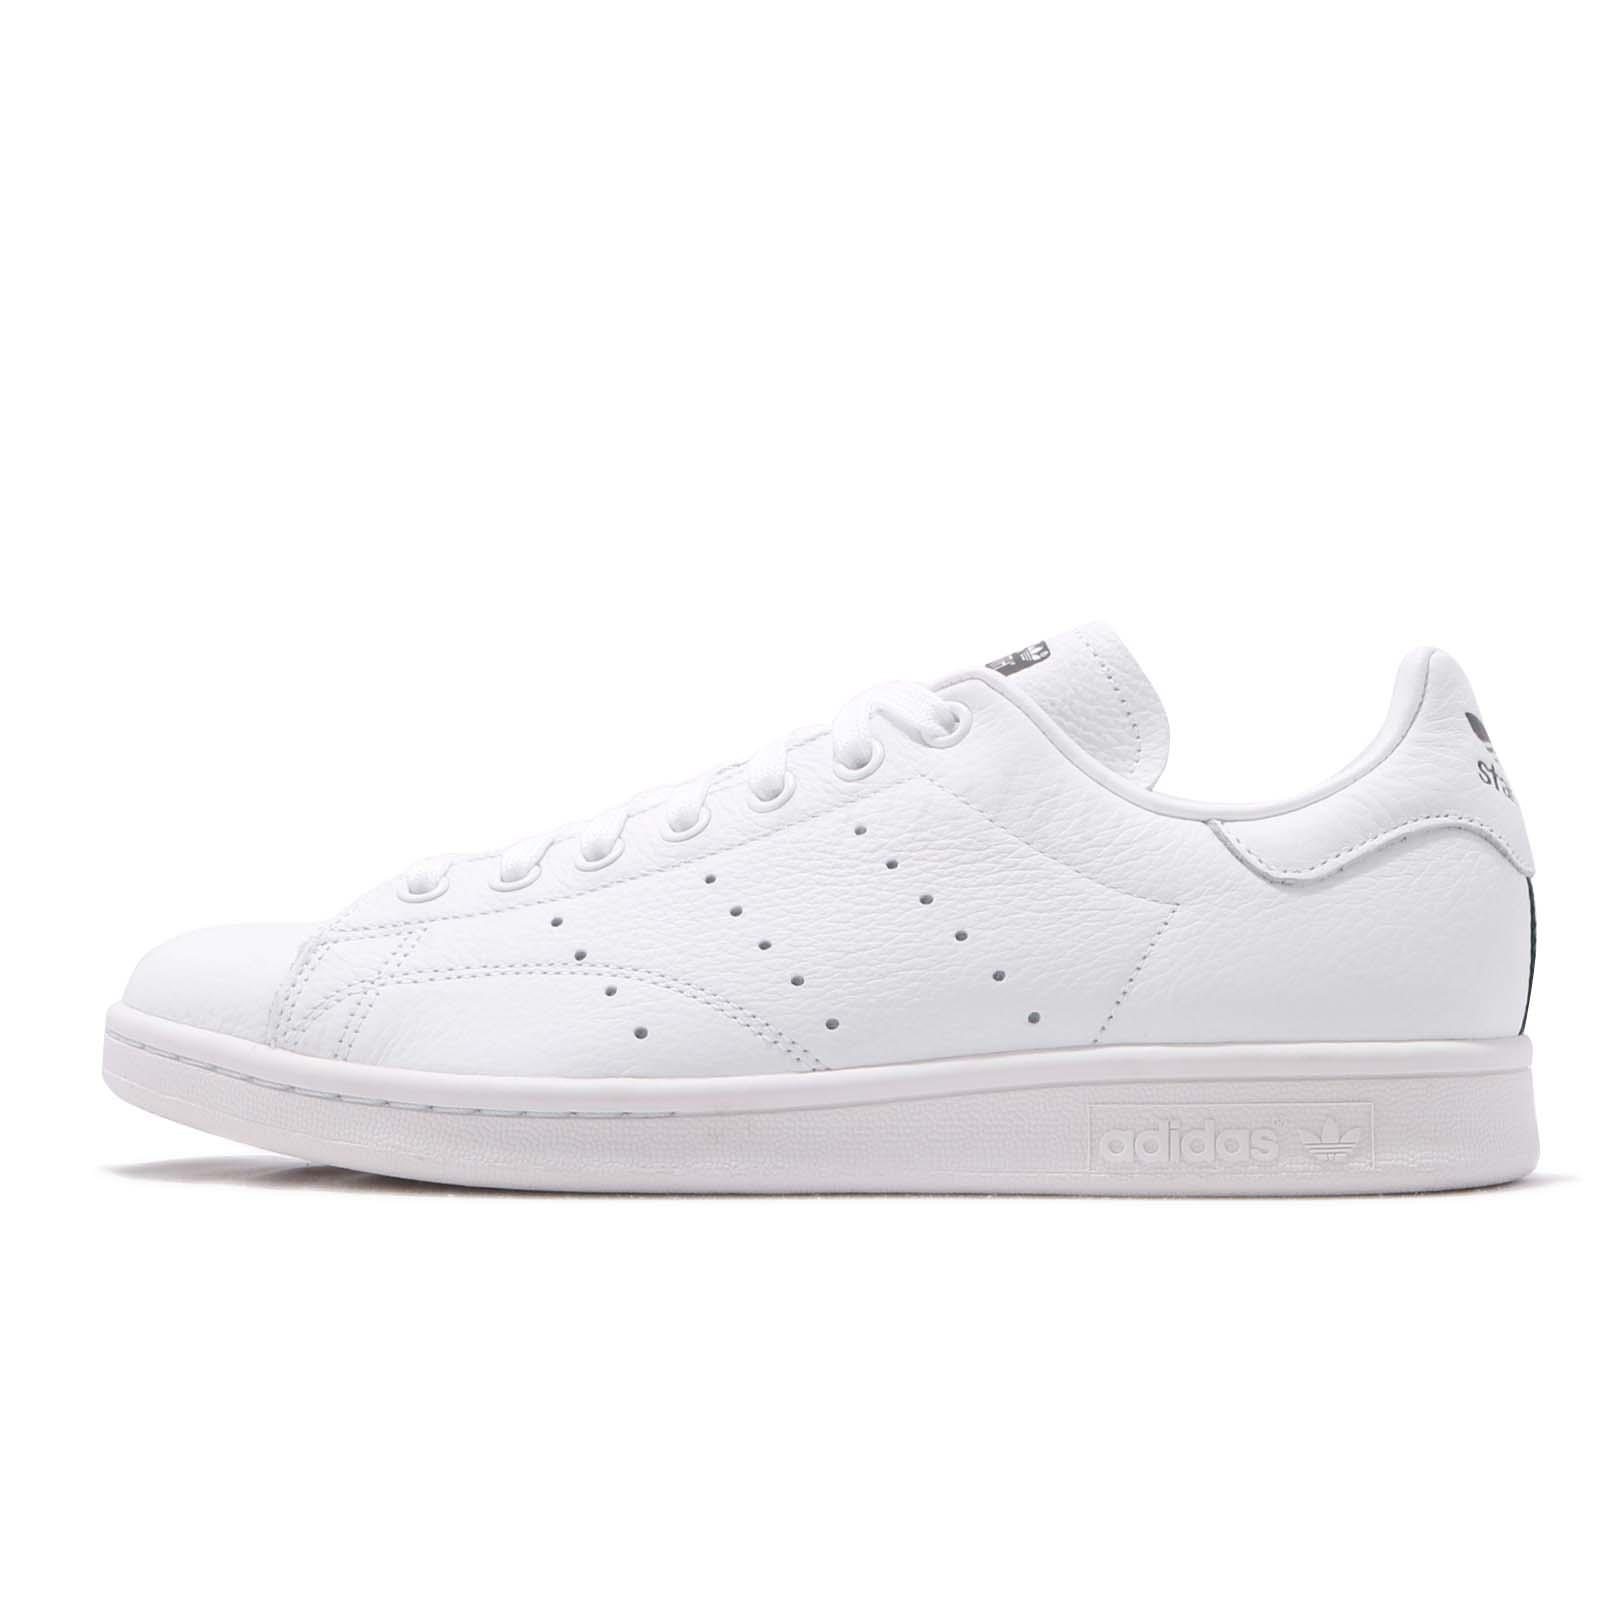 adidas Originals Stan Smith White Green Men Women Casual Shoes Sneakers  F34071 d28312a14